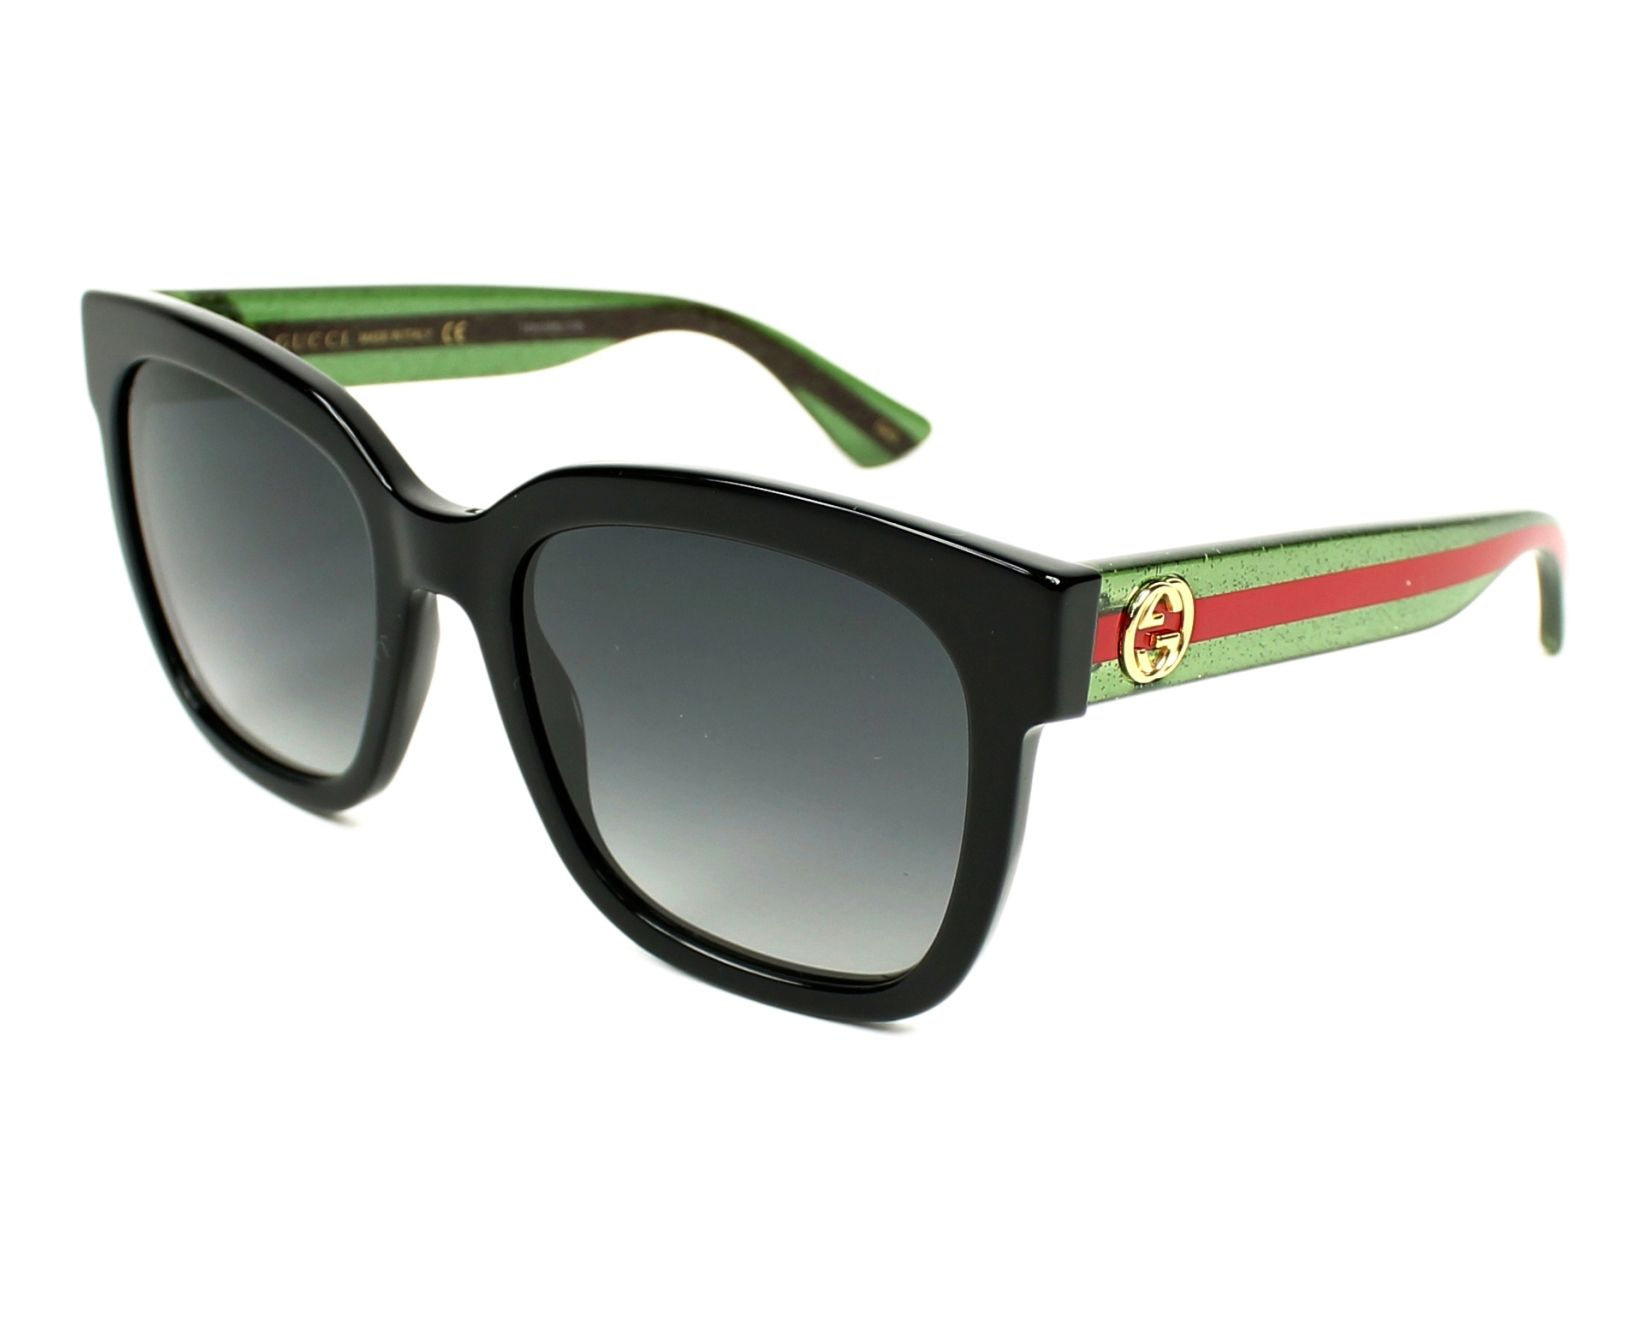 Gucci Sunglasses GG-0034-S 002 Black